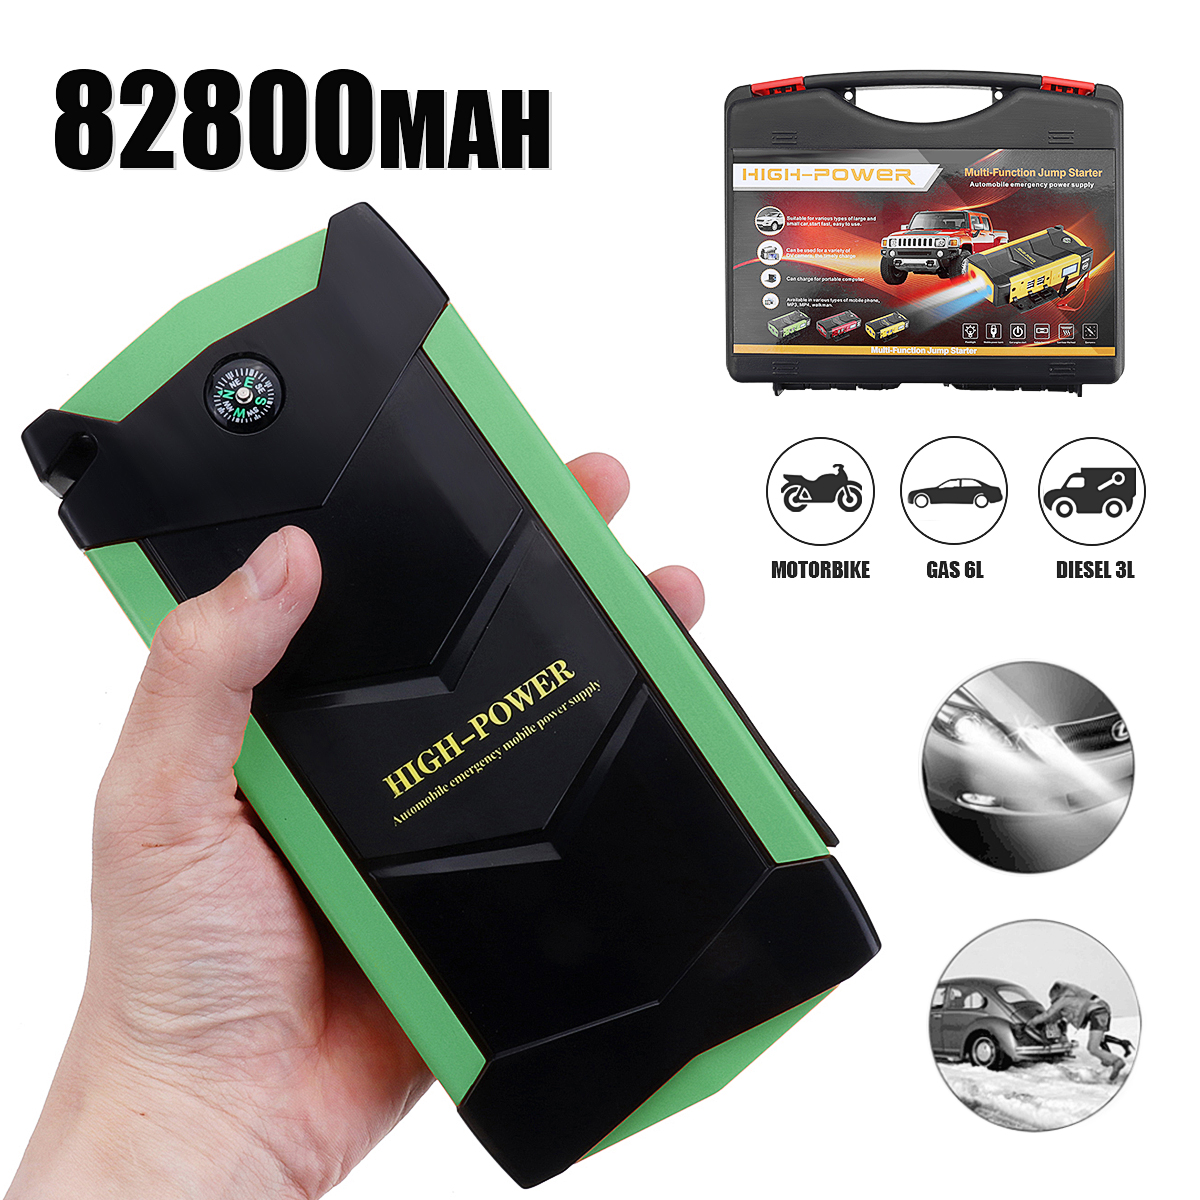 12V 82800mAh 4USB High Power Car Jump Starter Battery Charger Starting Car Booster Power Bank Tool Kit For Auto Starting Device car jump starter emergency 69800mah 12v starting device 4usb sos light mobile power bank car charger for car battery booster led